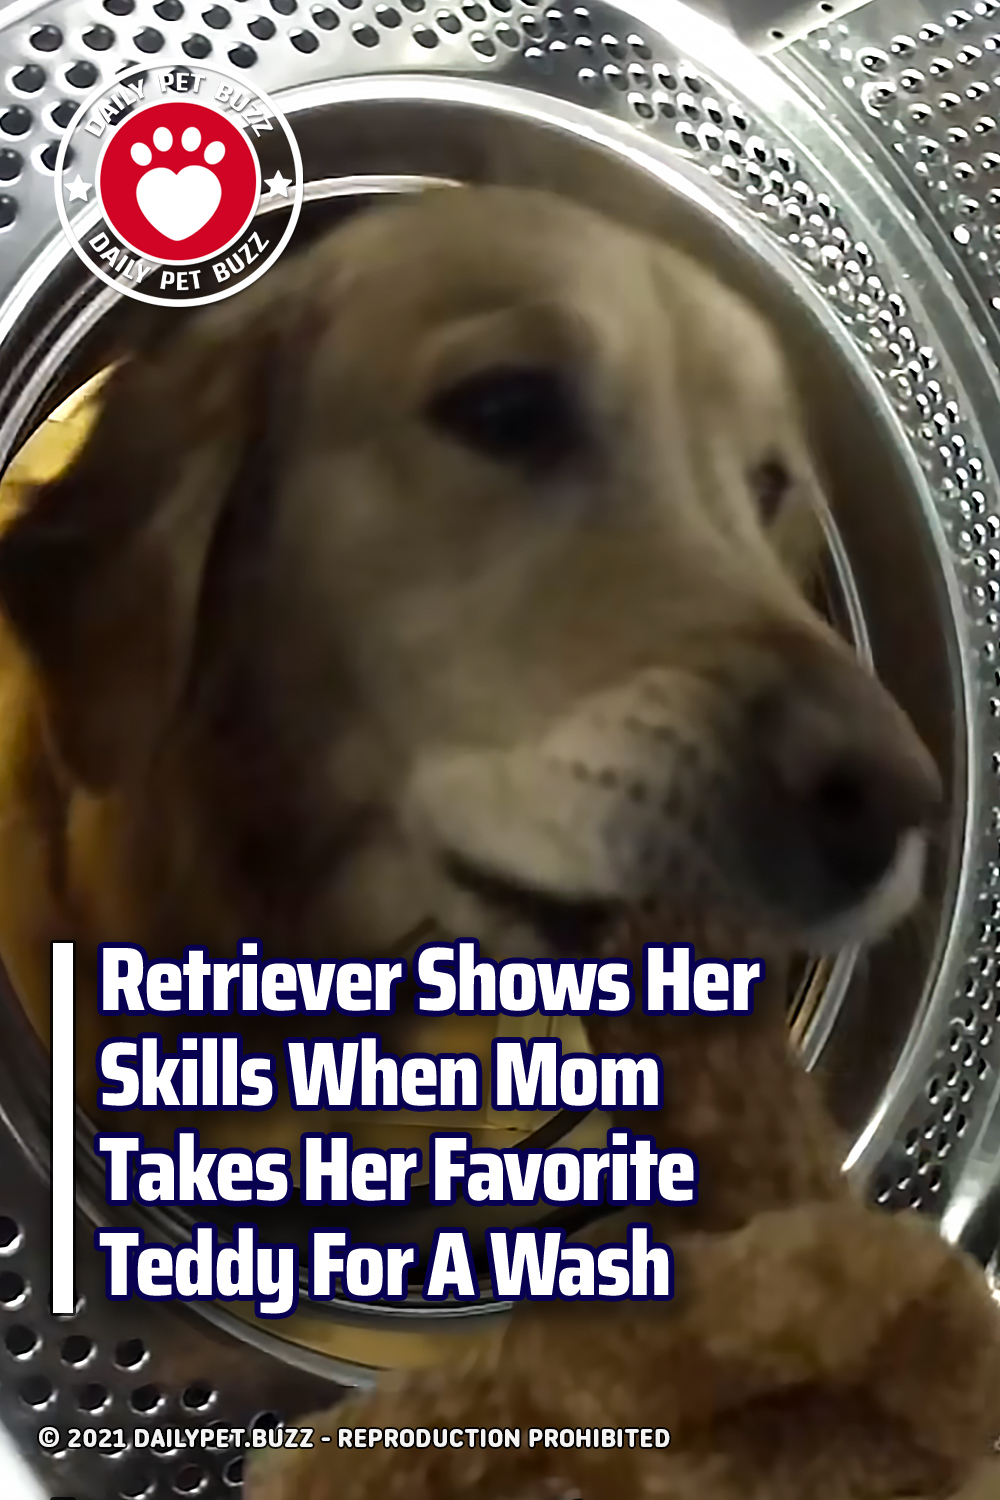 Retriever Shows Her Skills When Mom Takes Her Favorite Teddy For A Wash